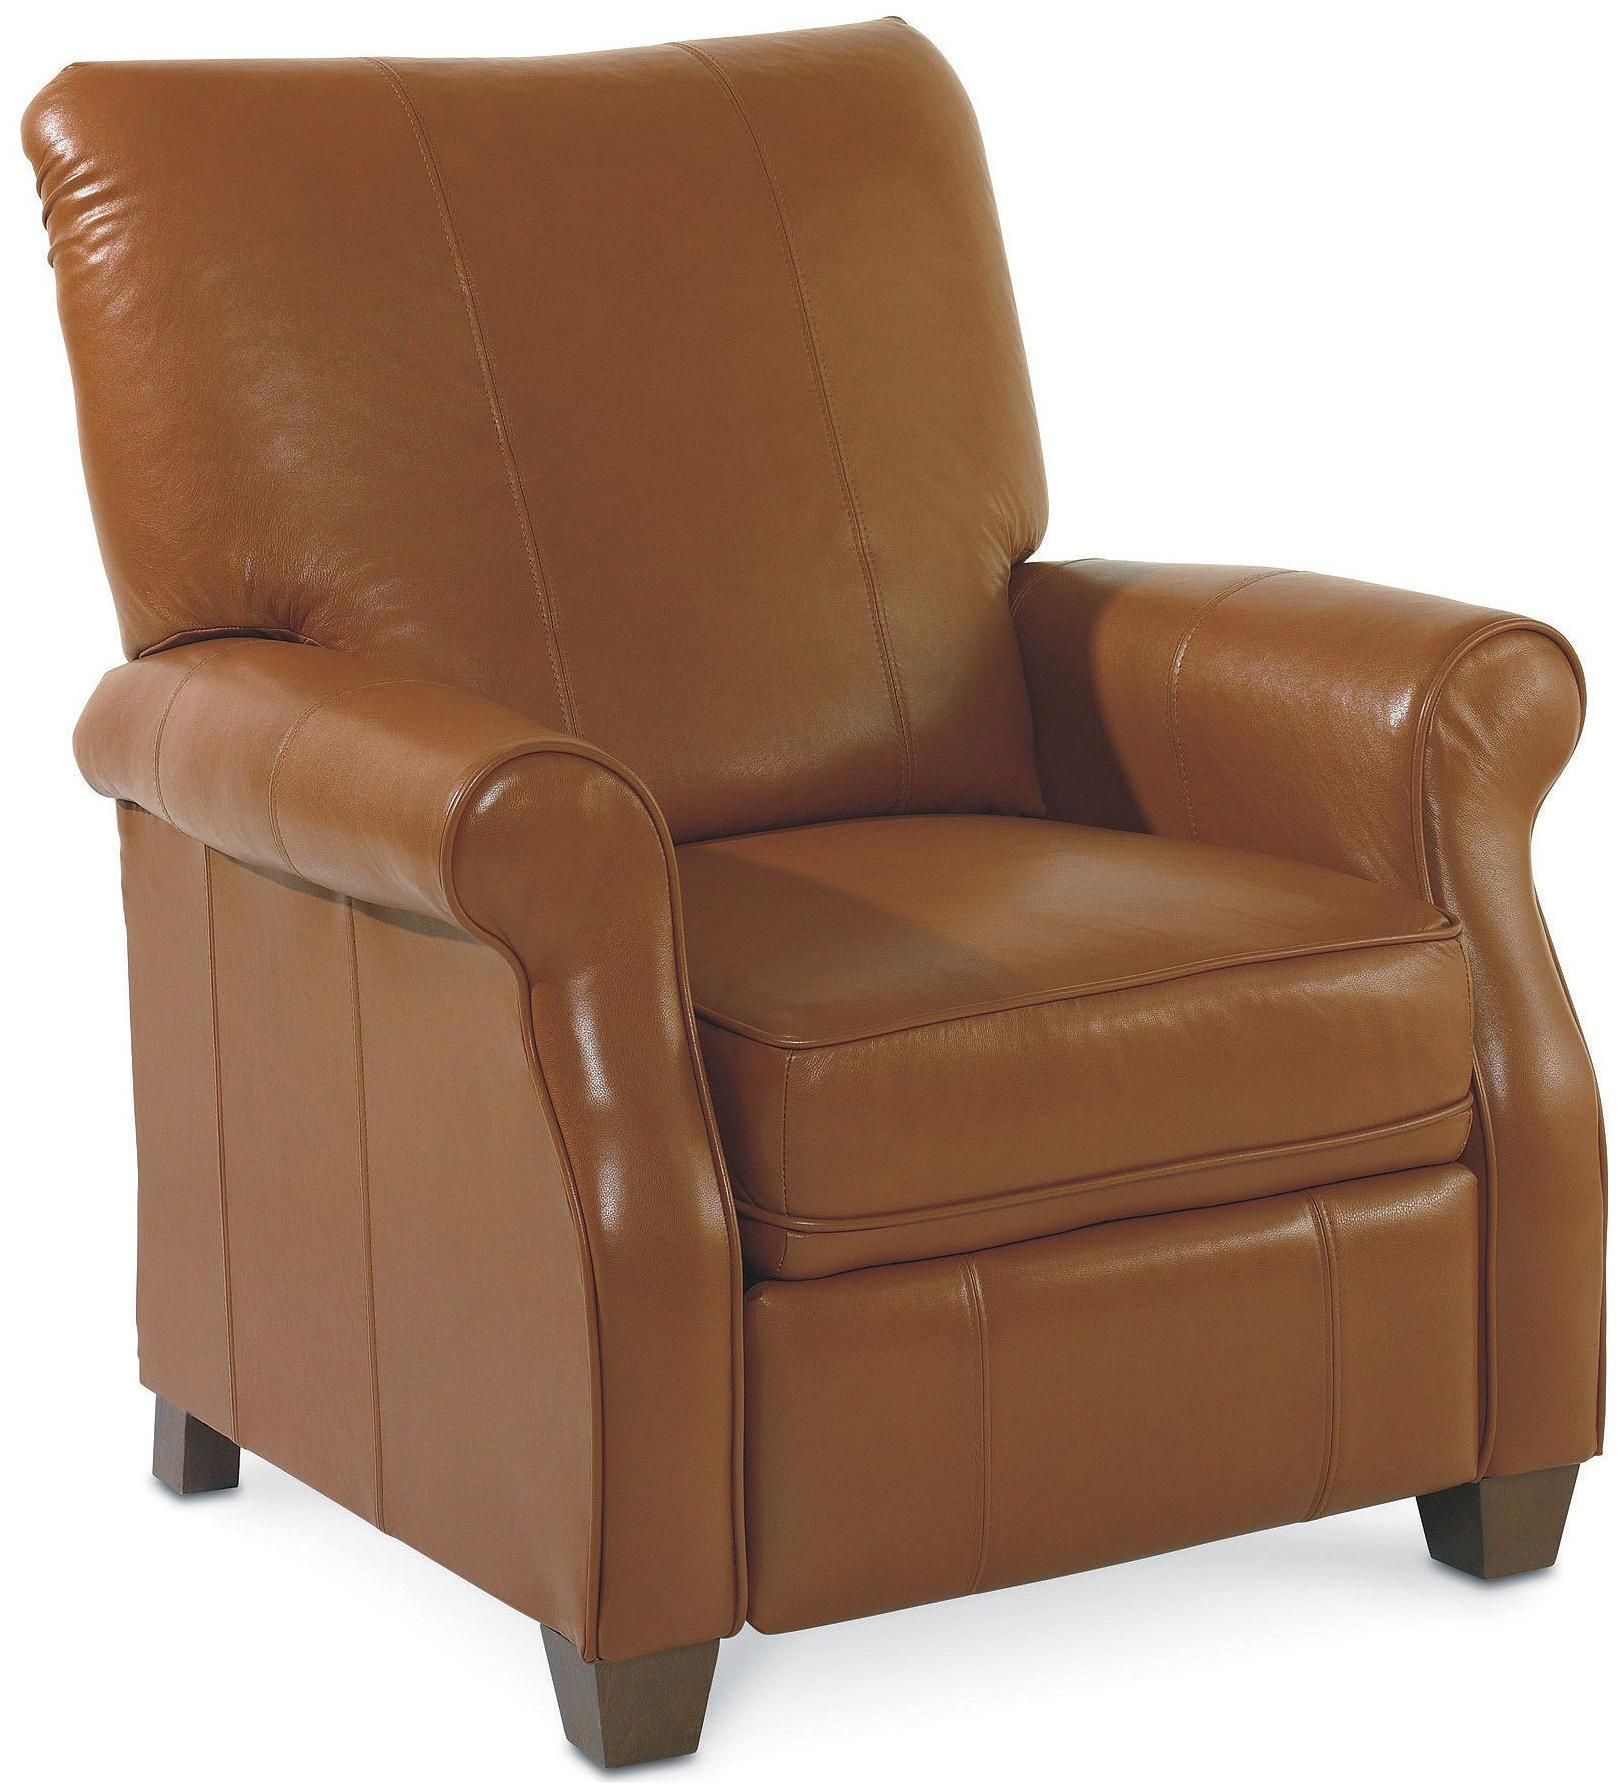 Find This Pin And More On Motion Furniture By Johnnyjanosik.